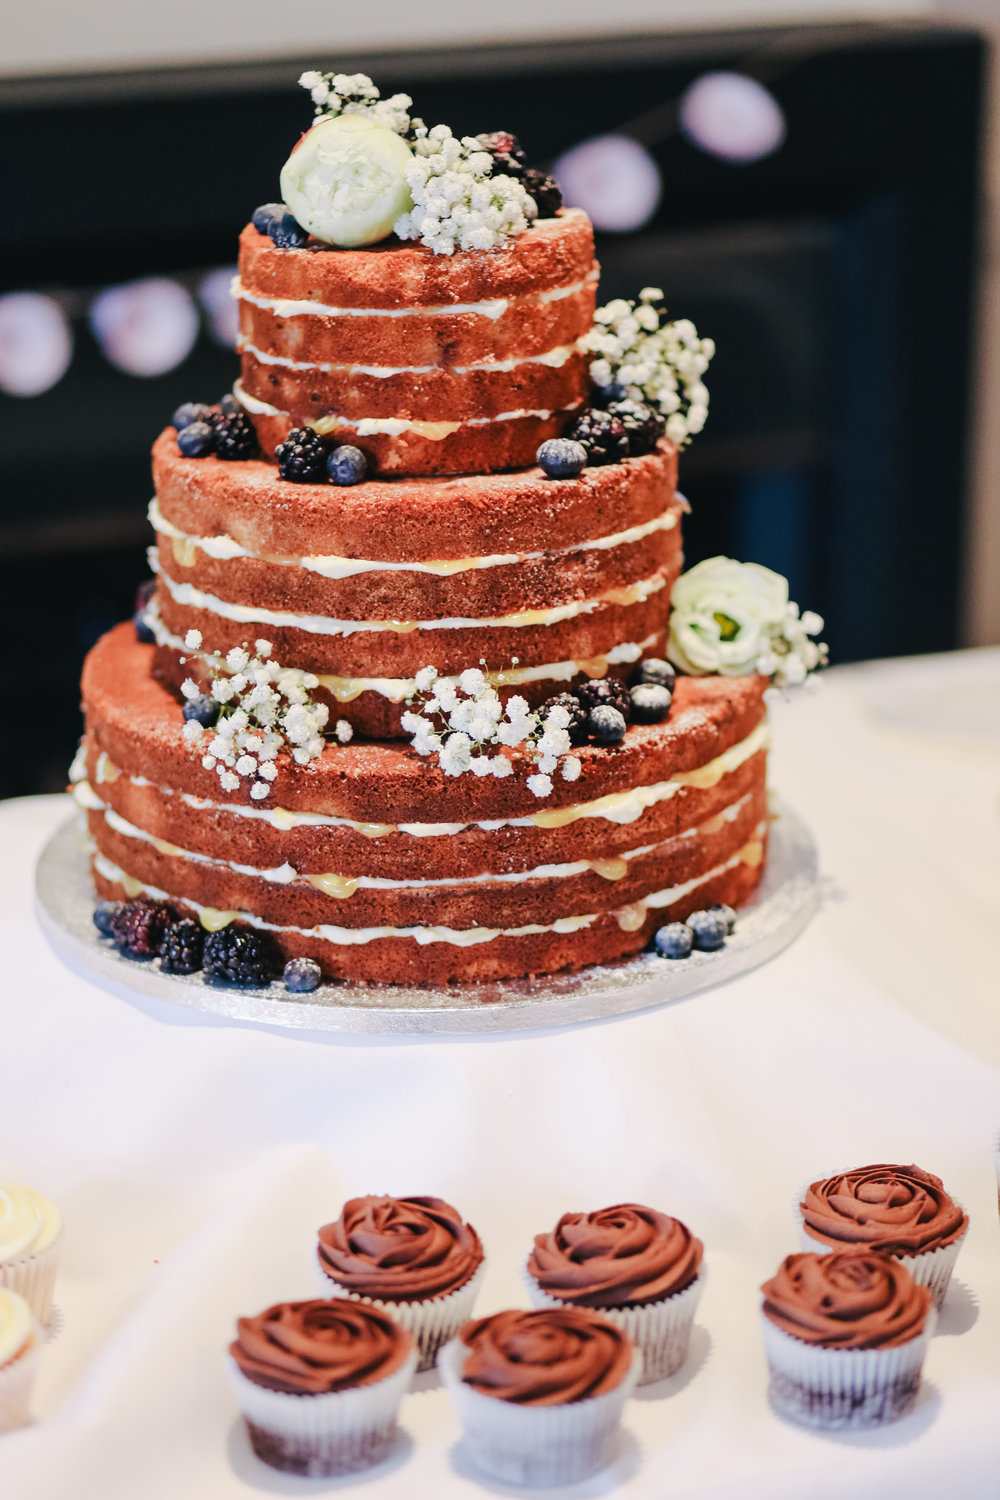 Check out this cake! -